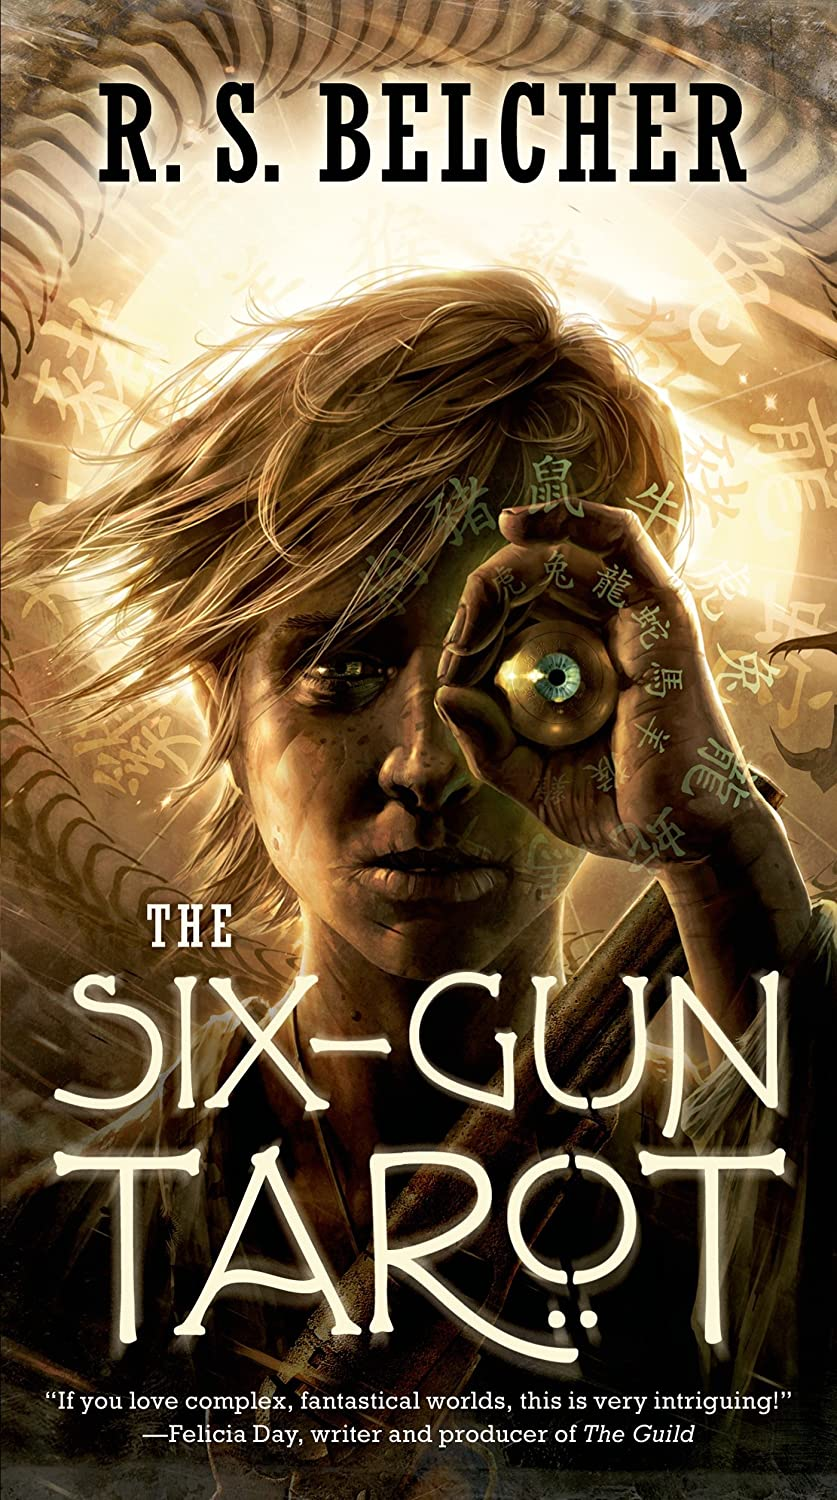 The Six-Gun Tarot (Golgotha Book 1) (English Edition) eBook ...